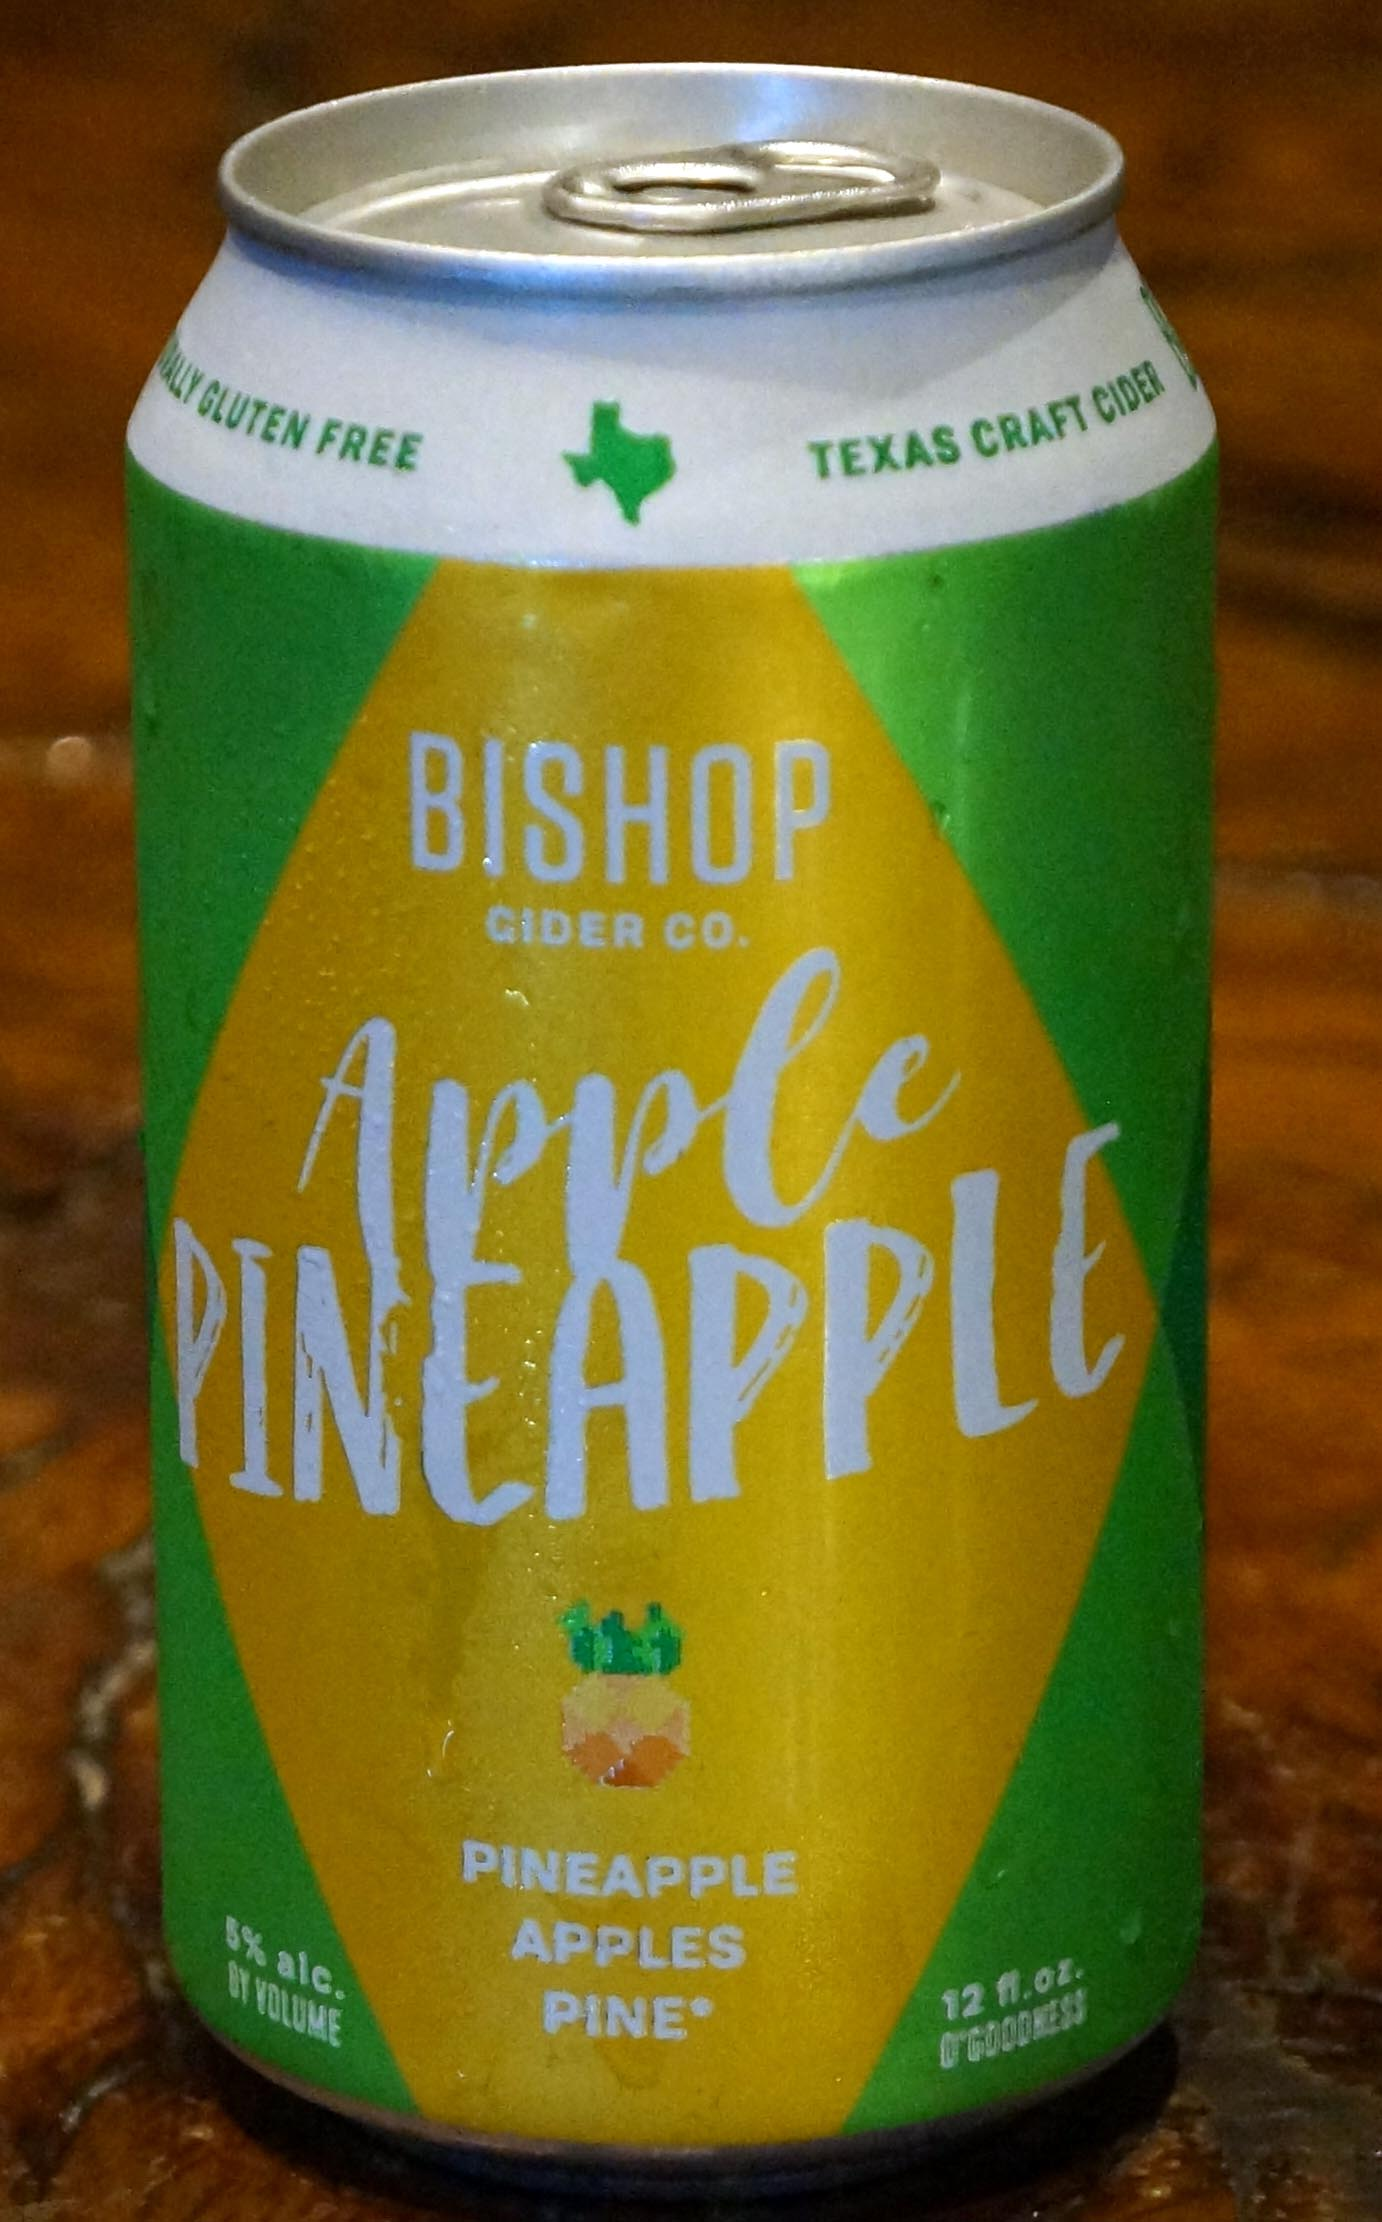 Cider_bishop_apple-pine.jpg